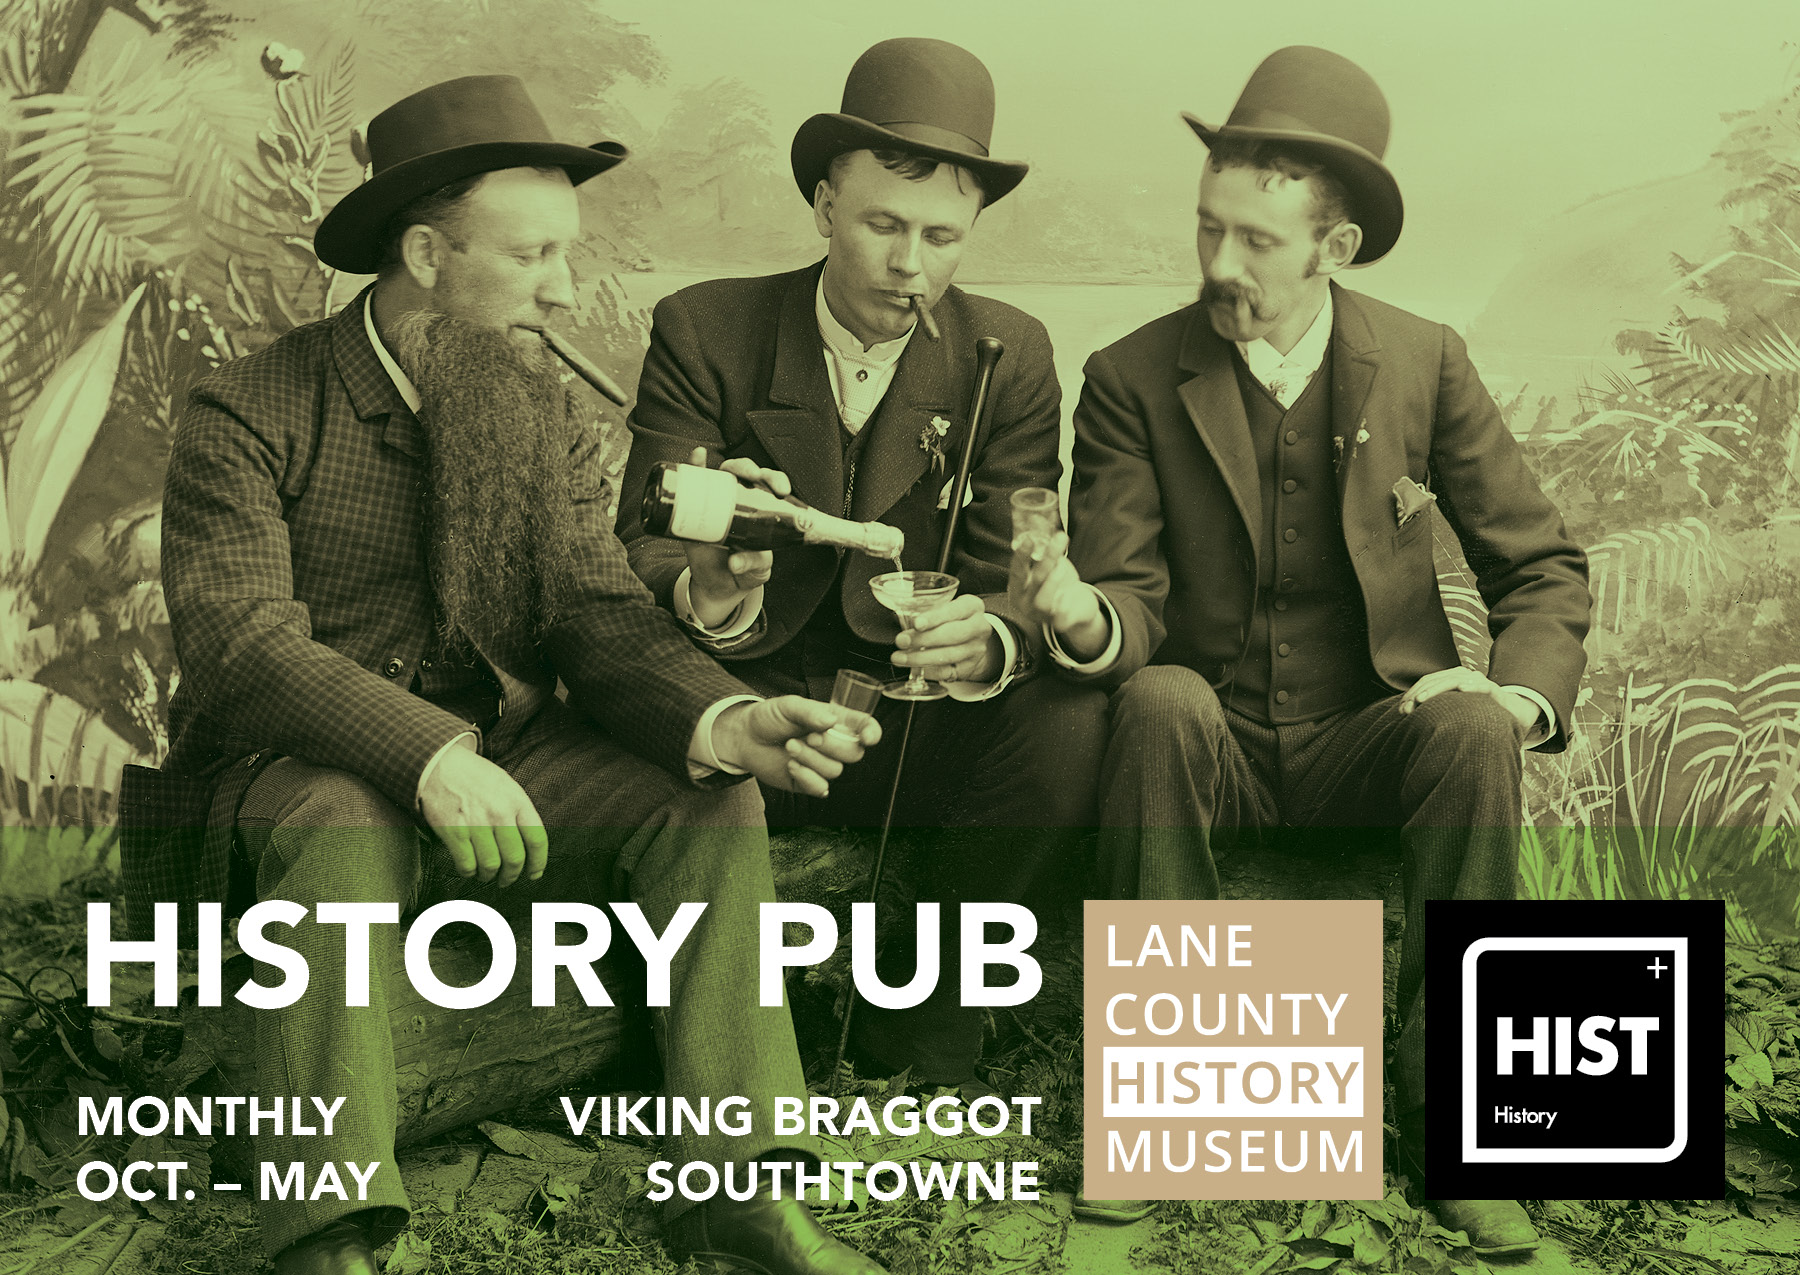 History Pub Monthly Oct-May, Viking Braggot Southtown